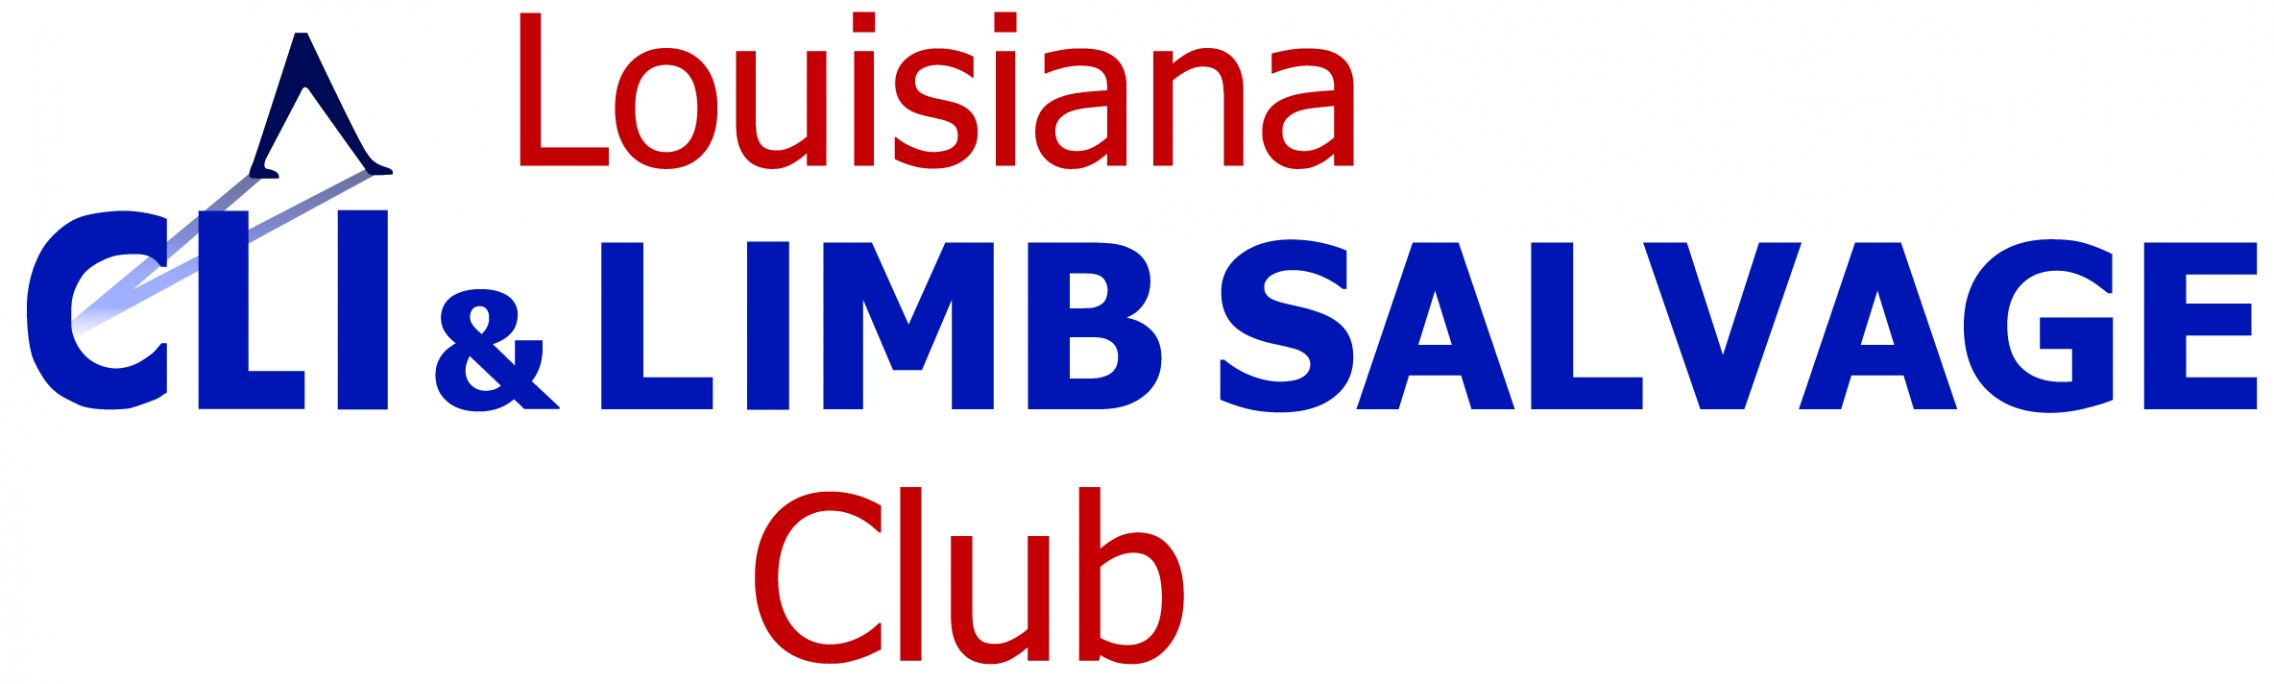 Louisiana CLI & Limb Salvage Club Logo